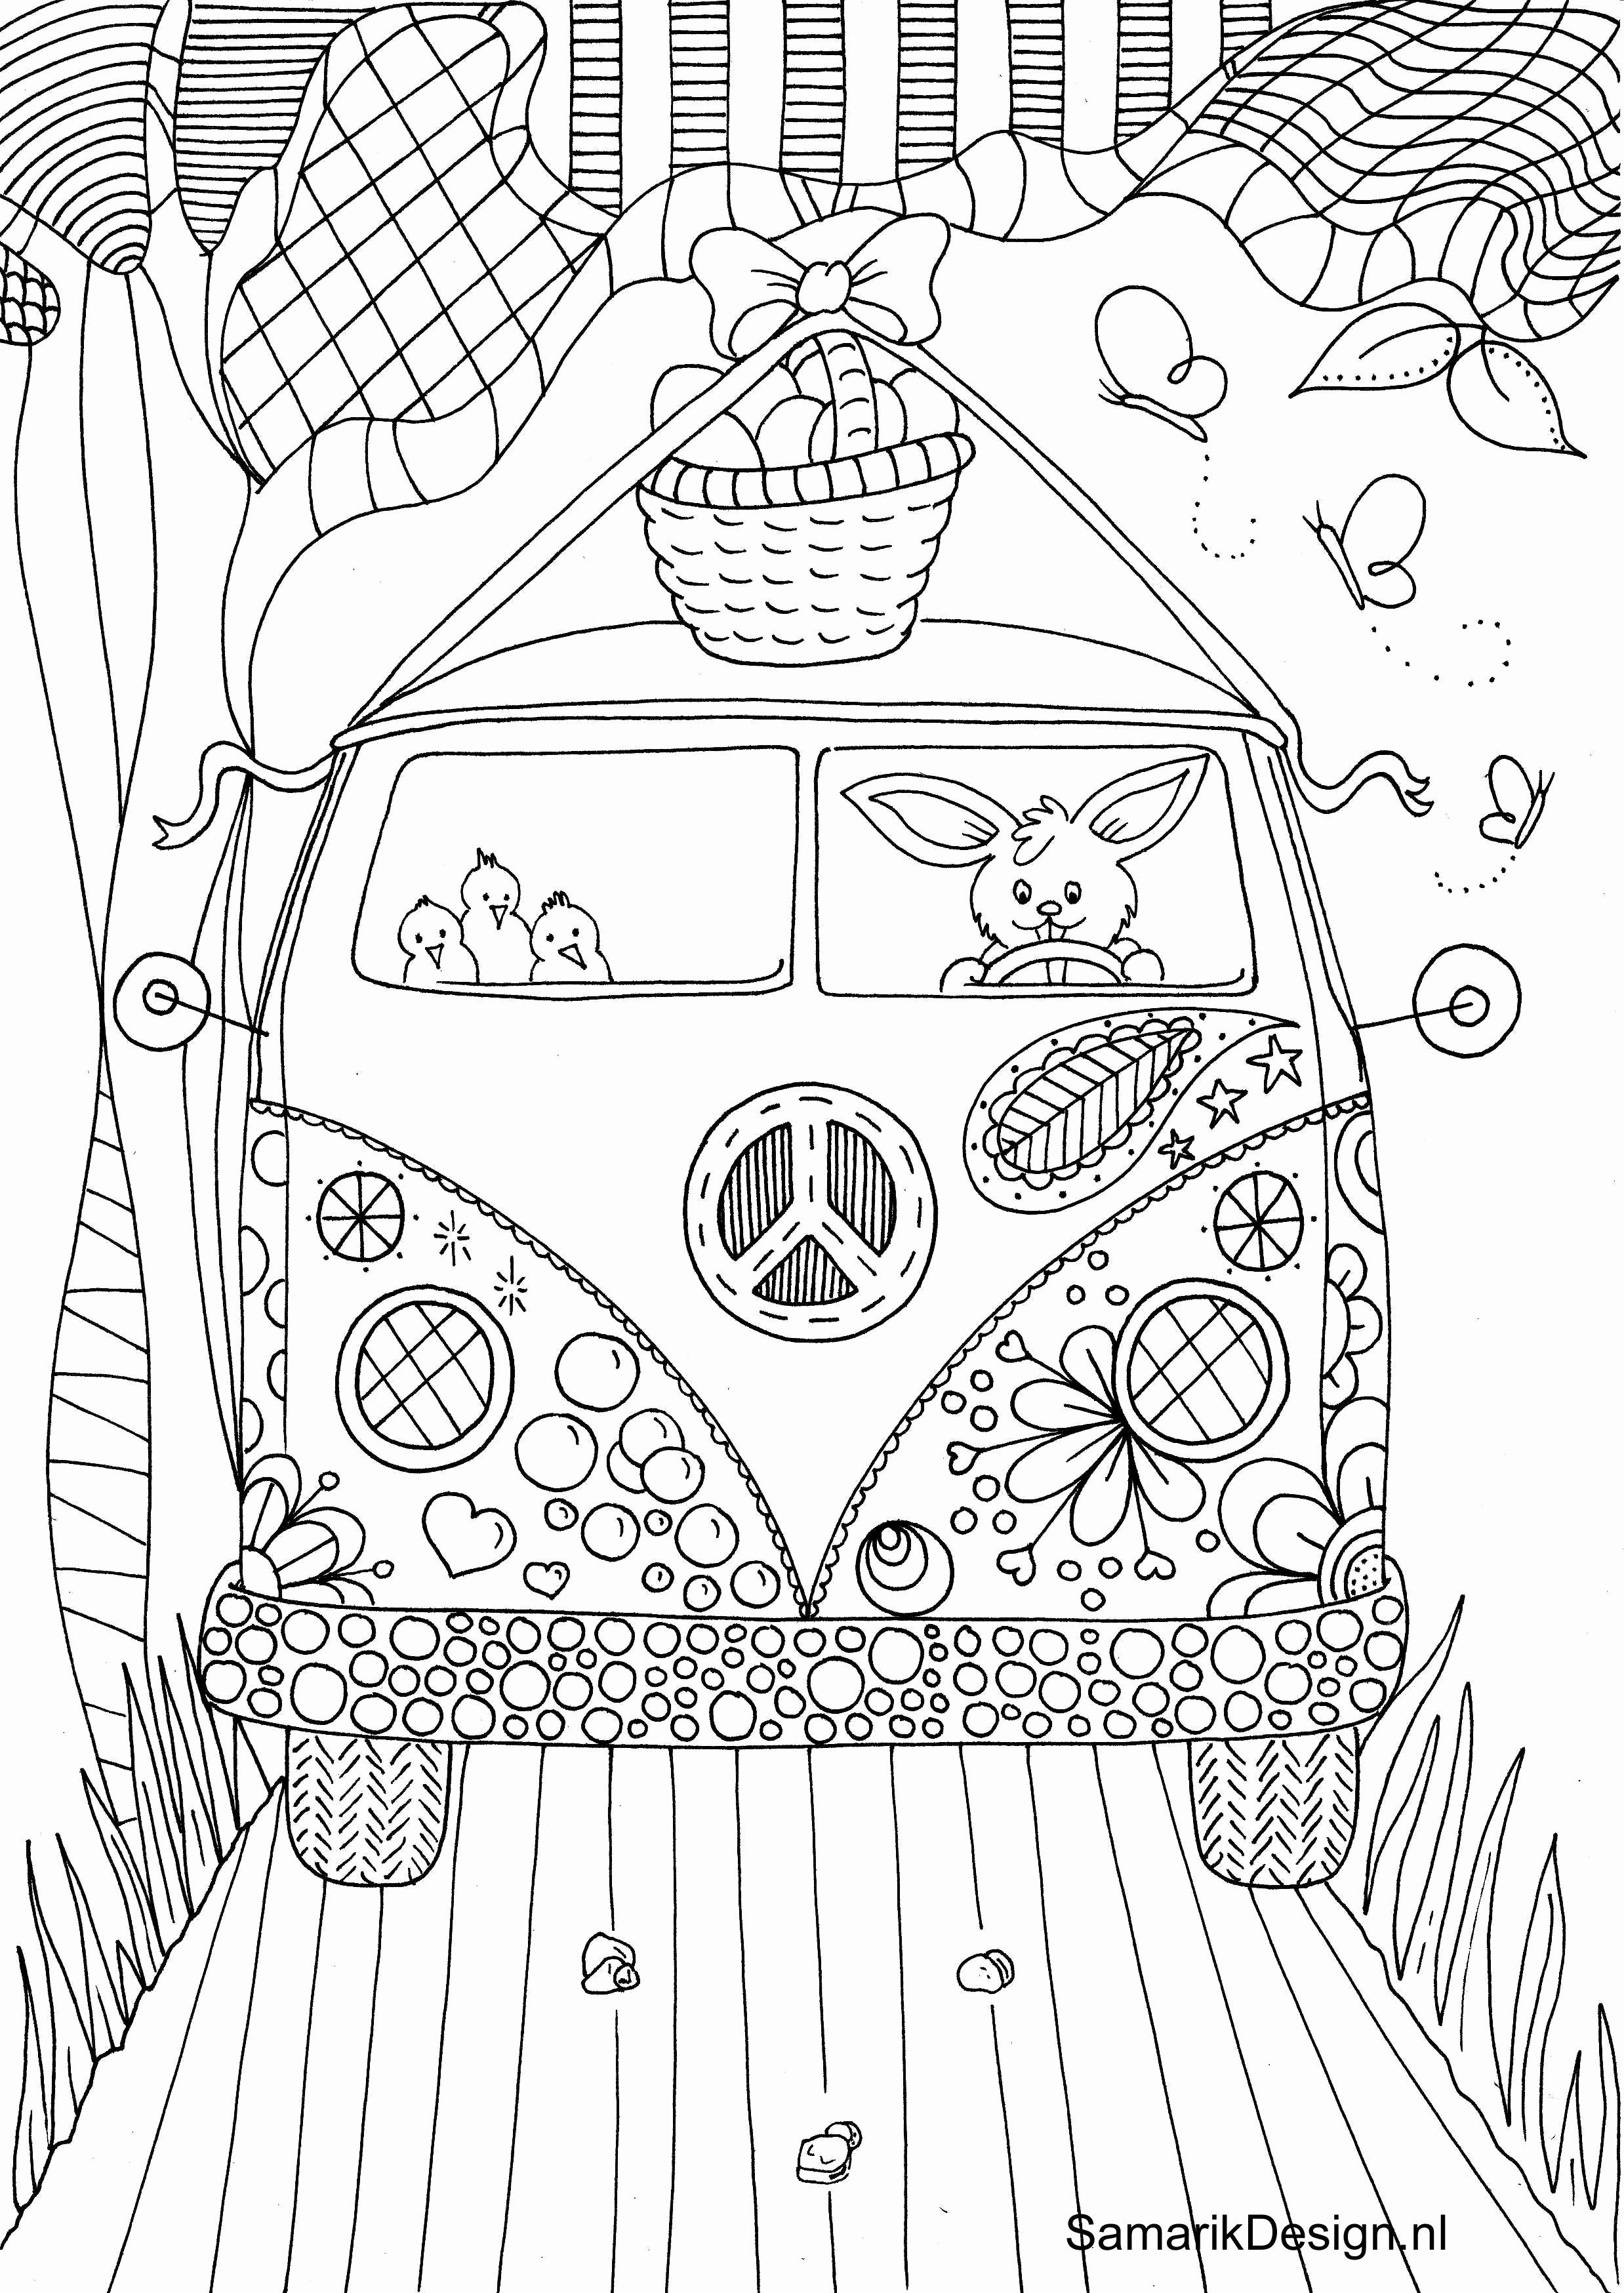 Cartoons Coloring Book Pdf Lovely 22 Most Mean Clock Coloring Page Lovely Kombi Travels Pages Christmas Coloring Pages Coloring Pages Coloring Books